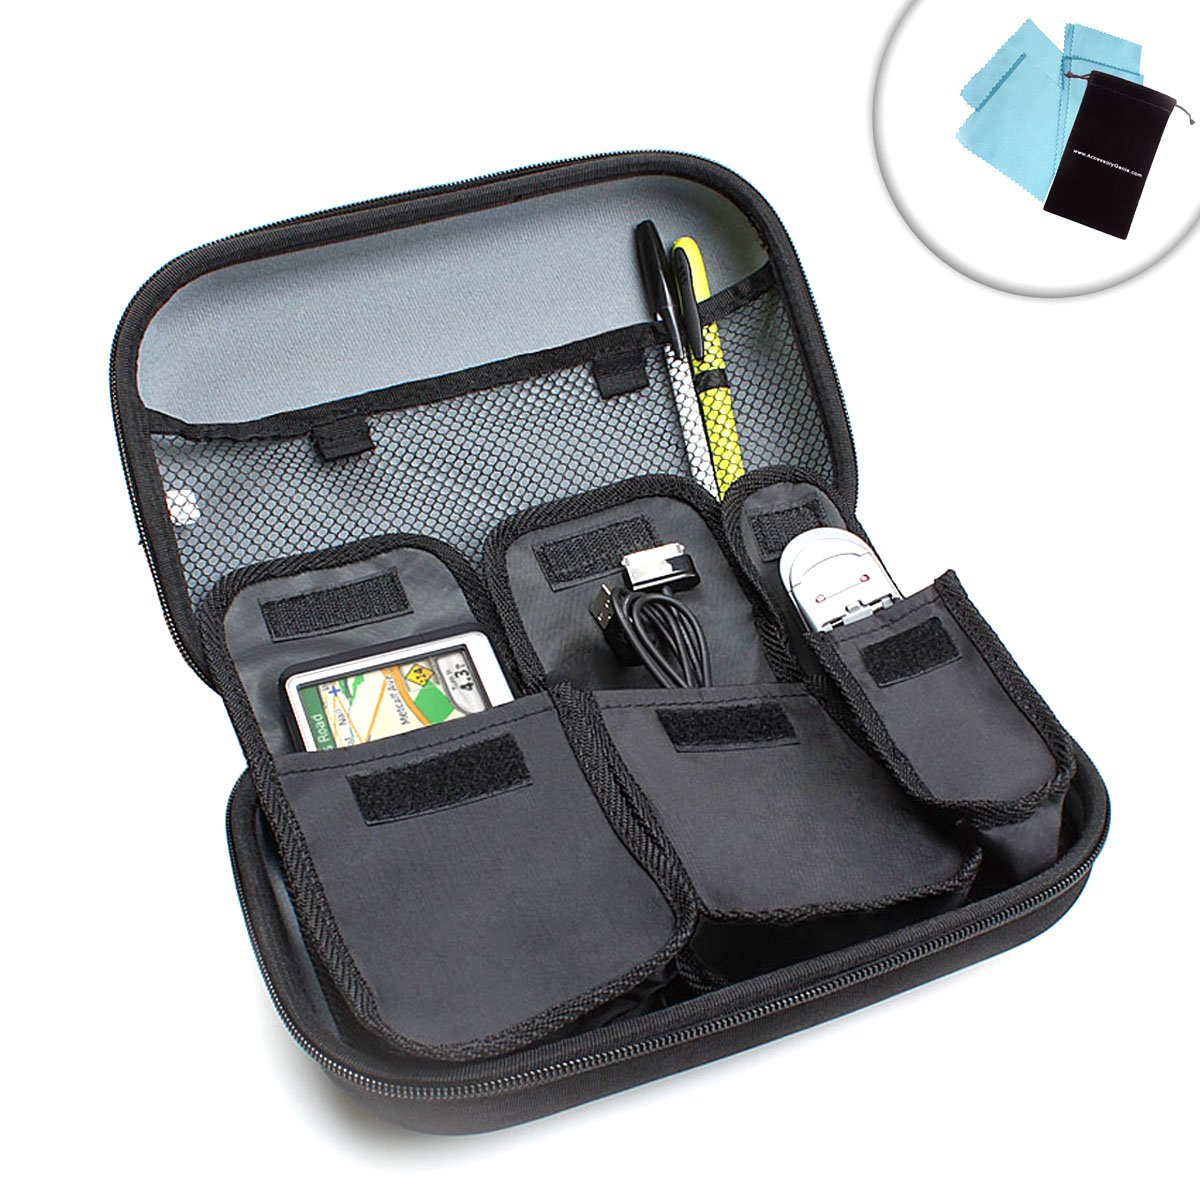 Universal Travel Case for 5 Inch Garmin nuvi GPS & Accessories by USA Gear - Works With Garmin nuvi 68LMT , nuvi 58 , nuvicam LMTHD and More GPS Units , Chargers , Adapters and Memory Cards